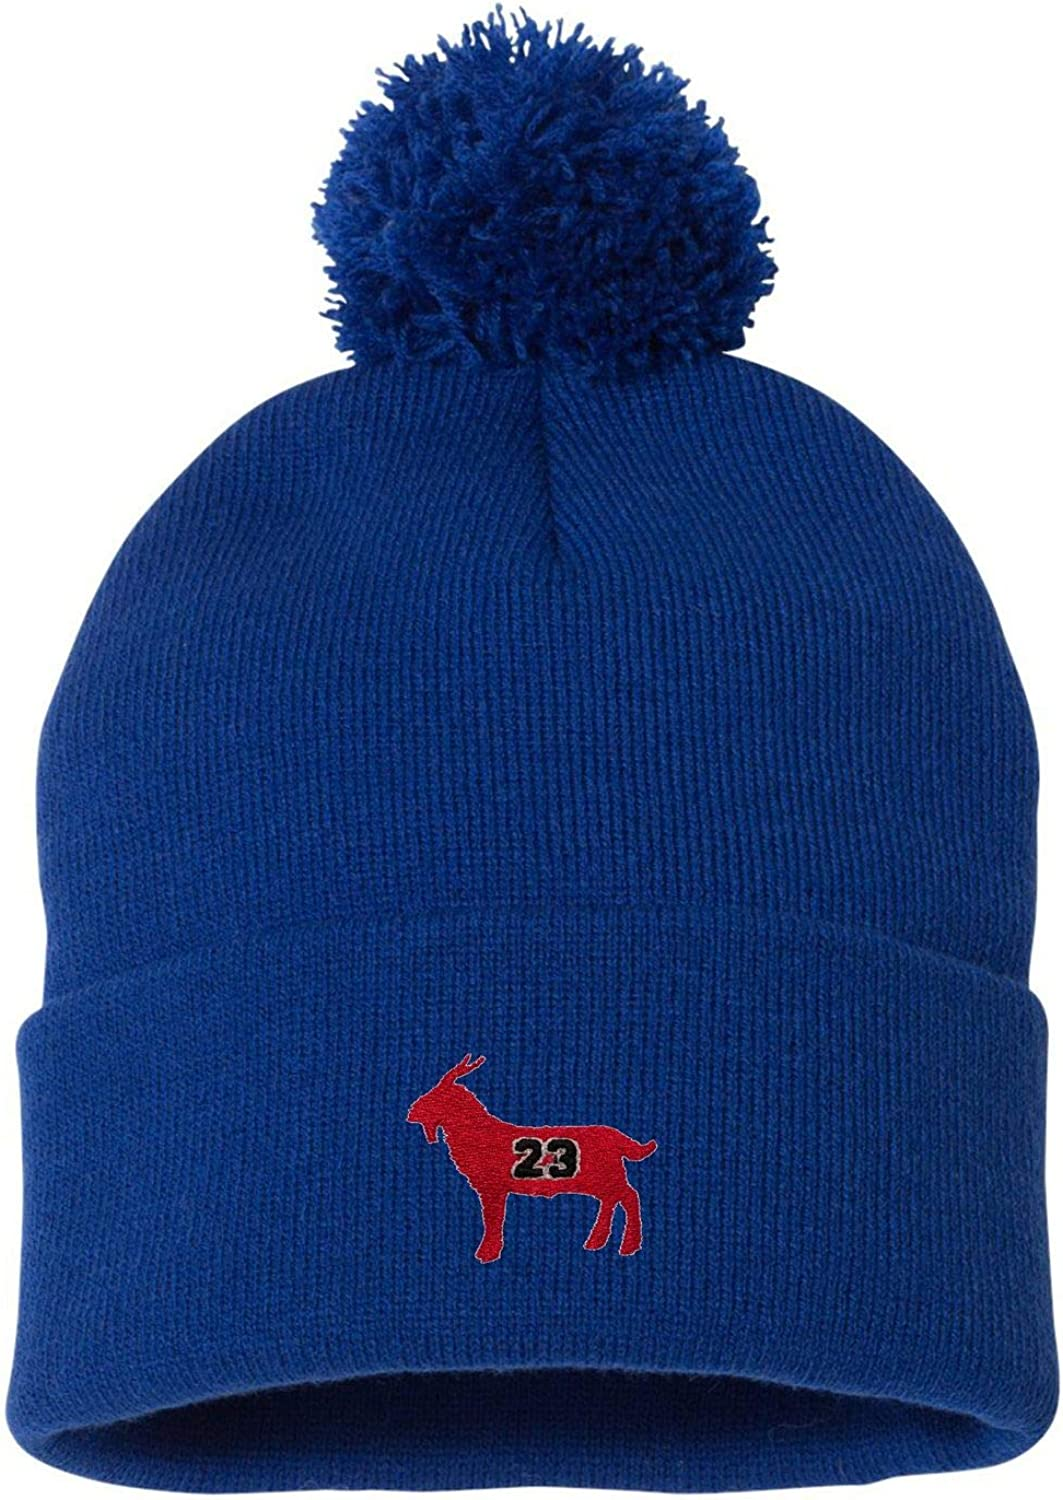 Jordan #23 Goat Greatest of All Time Embroidered Knit Beanie Pom Cap Adult G.O.A.T